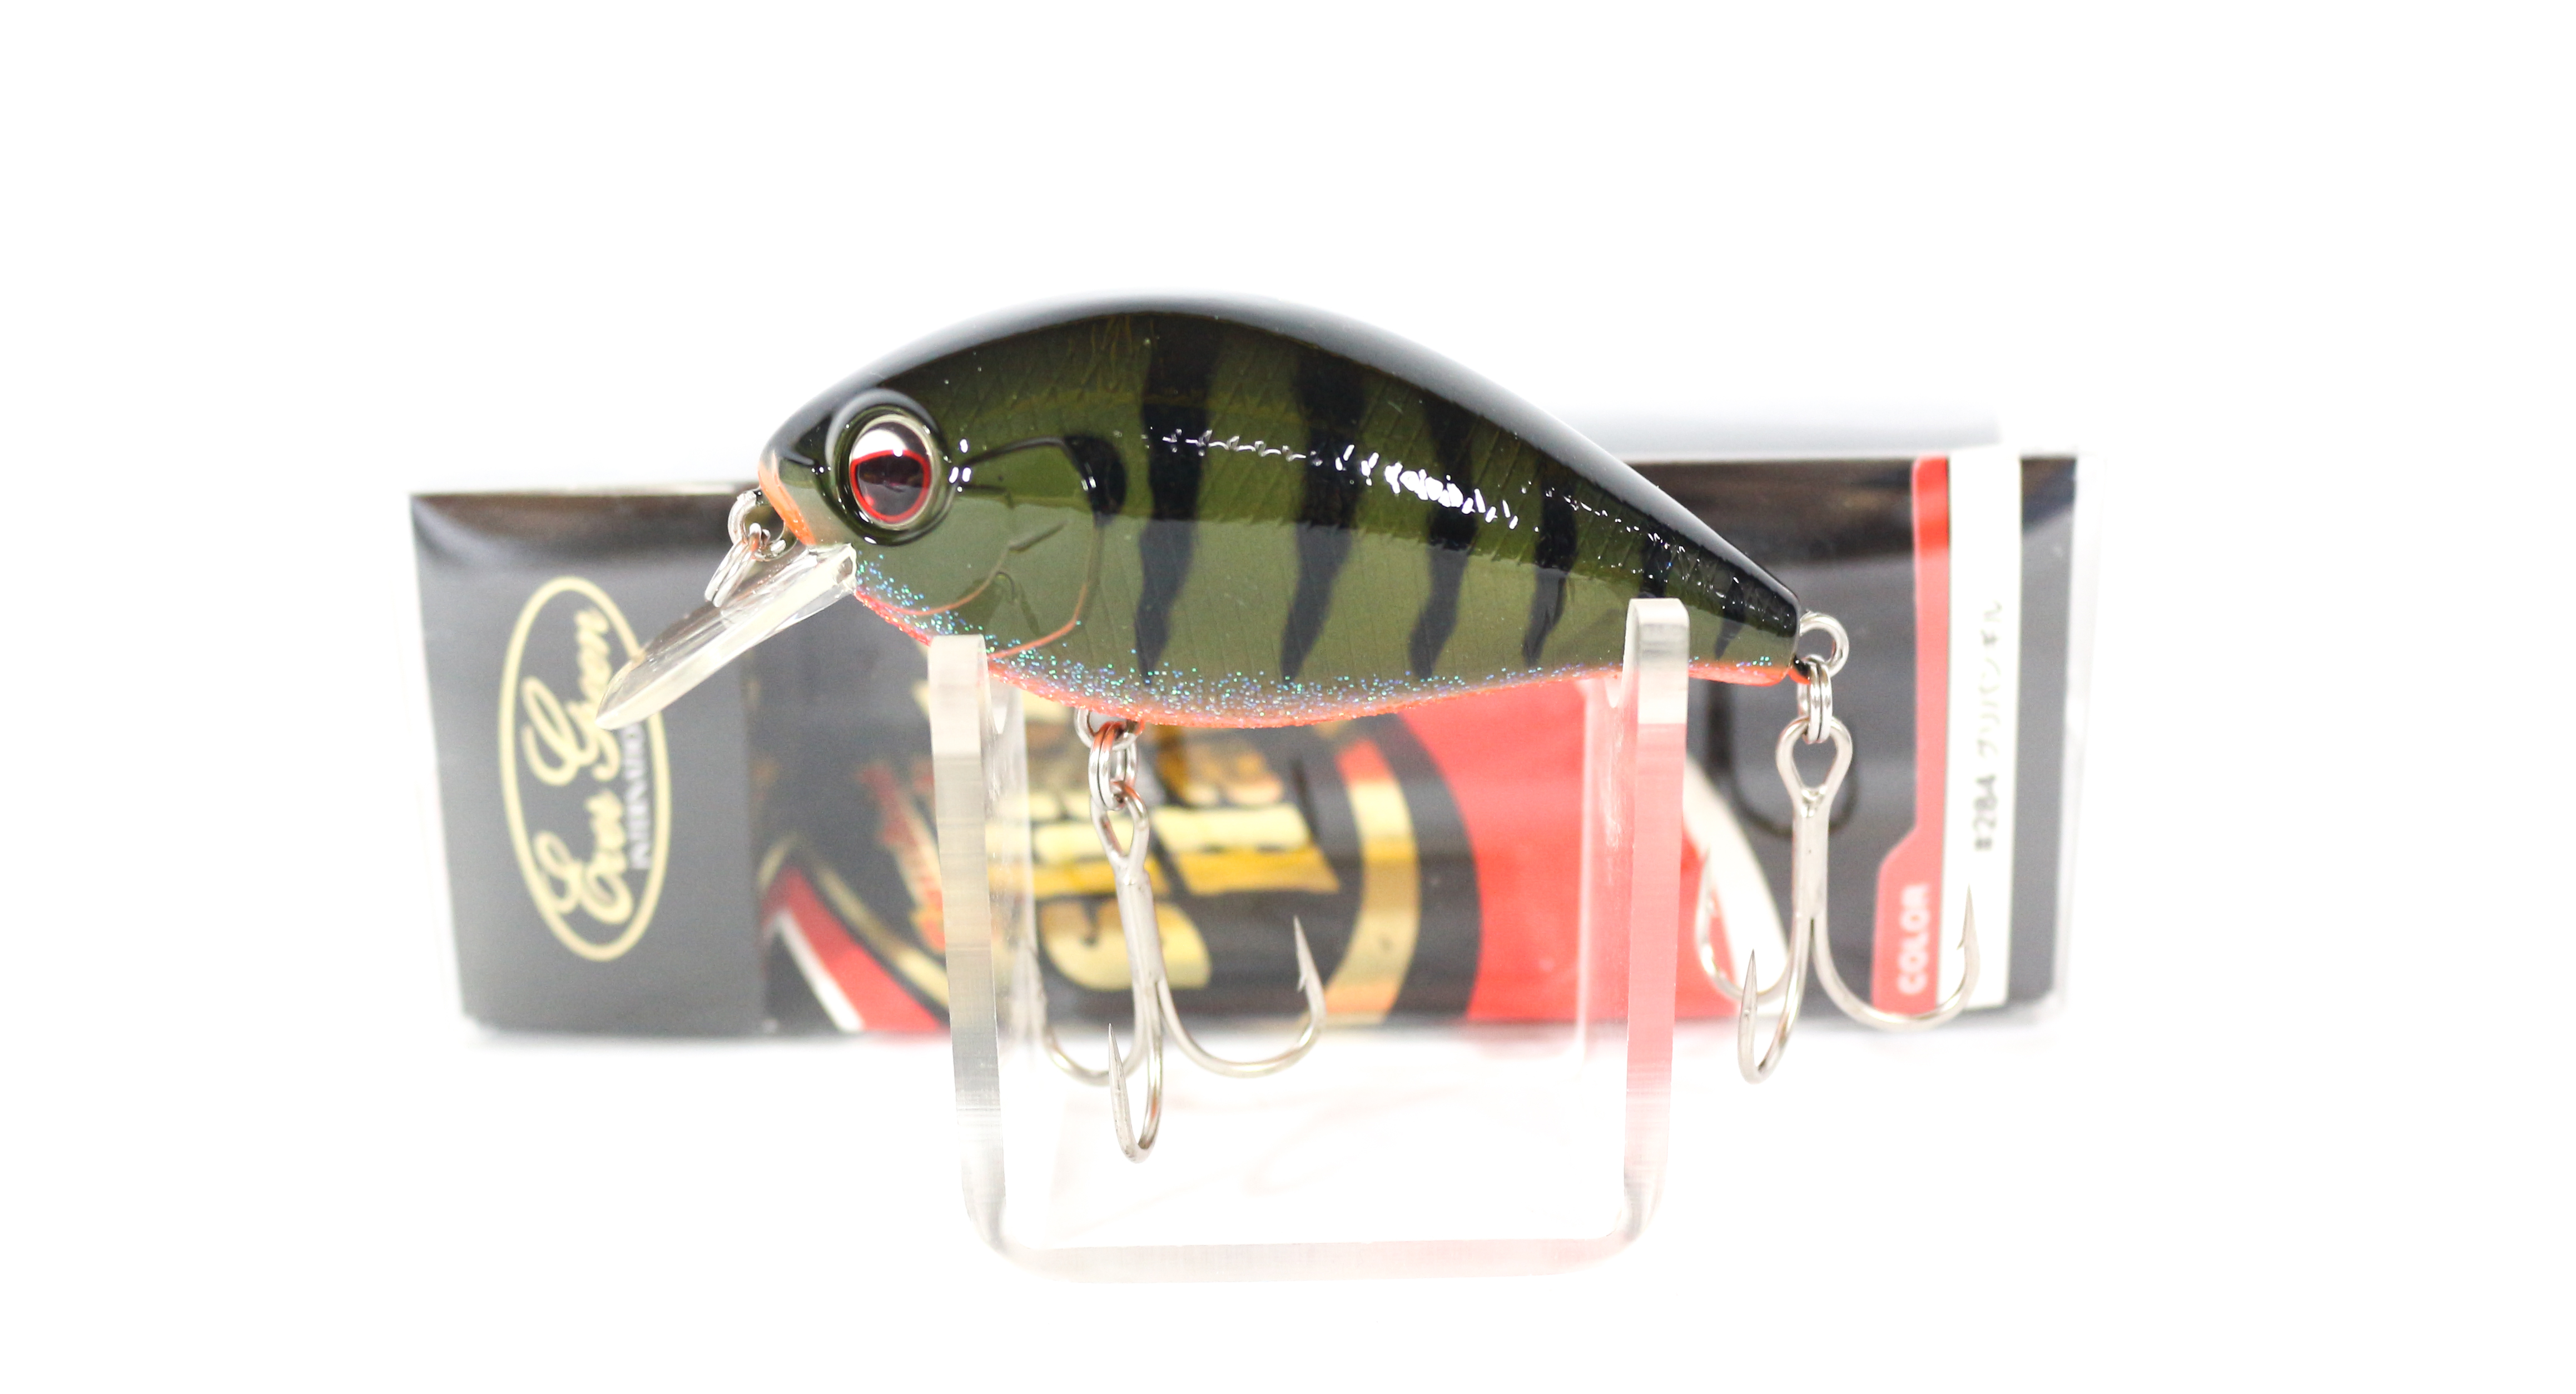 Evergreen Combat Crank Shallow Hawg Floating Lure 284 (2886)